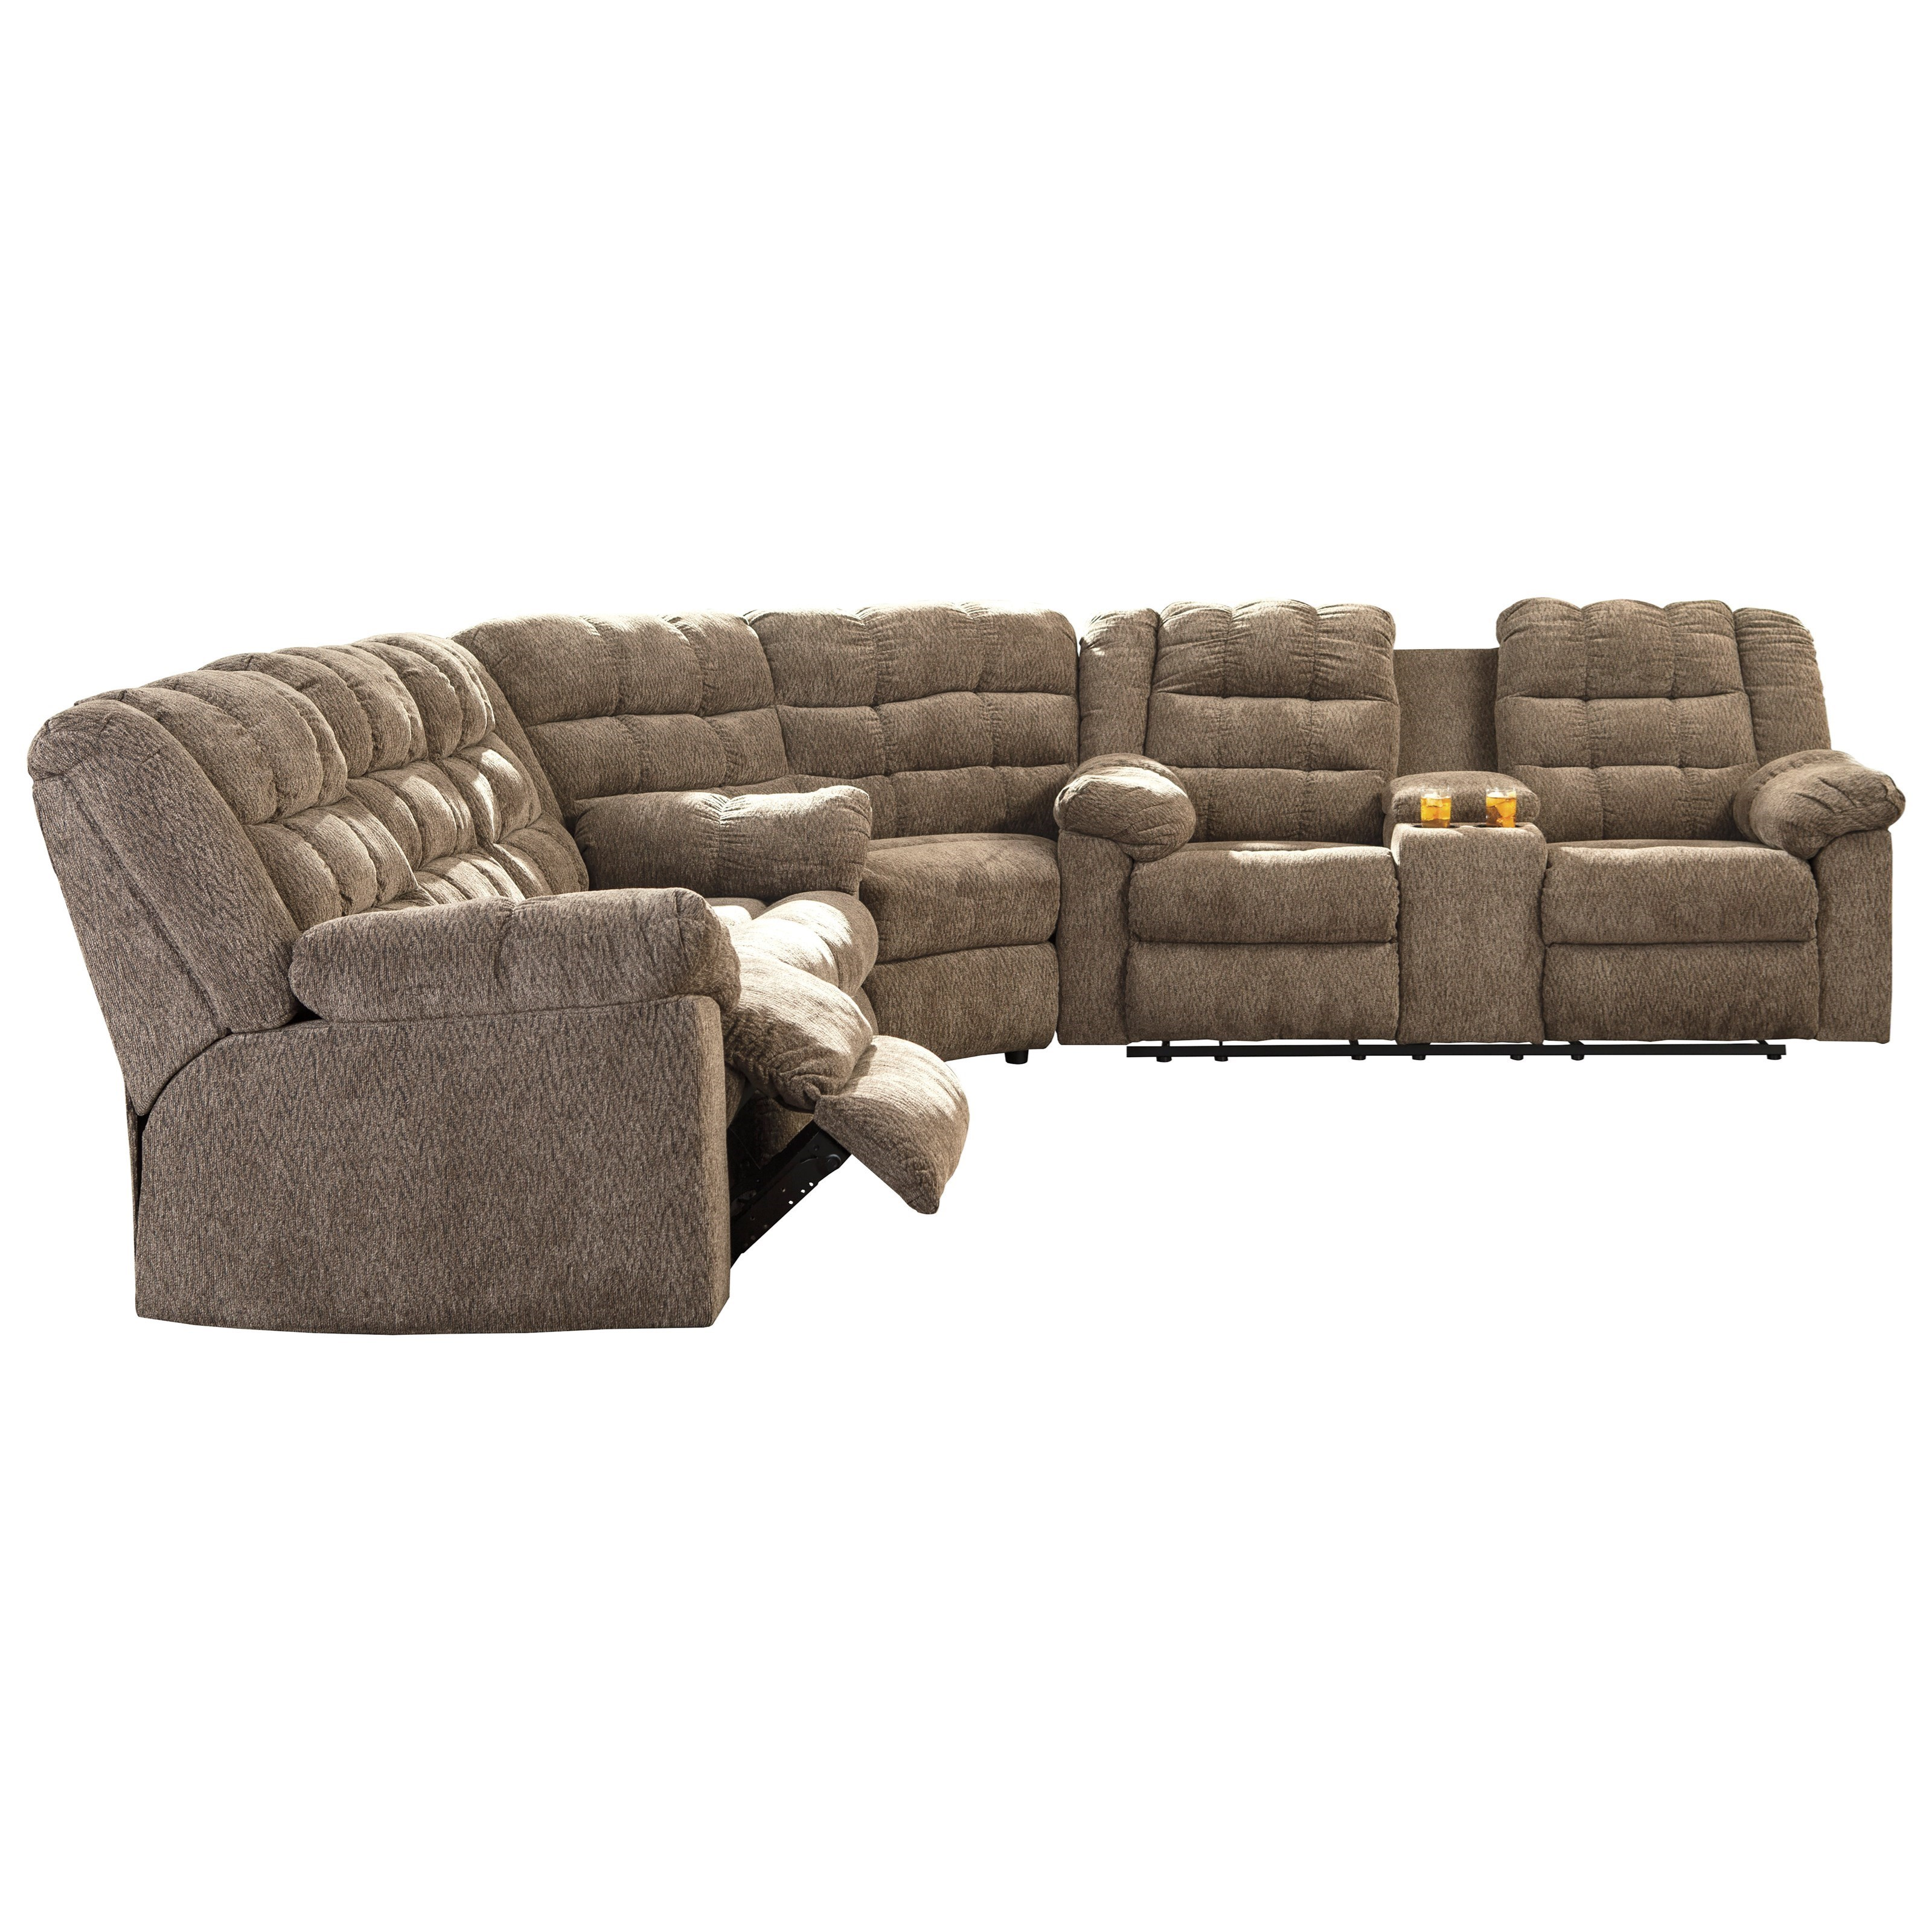 sand item sectional wayside separately jackson sofa sold six malibu furniture seat pieces number products